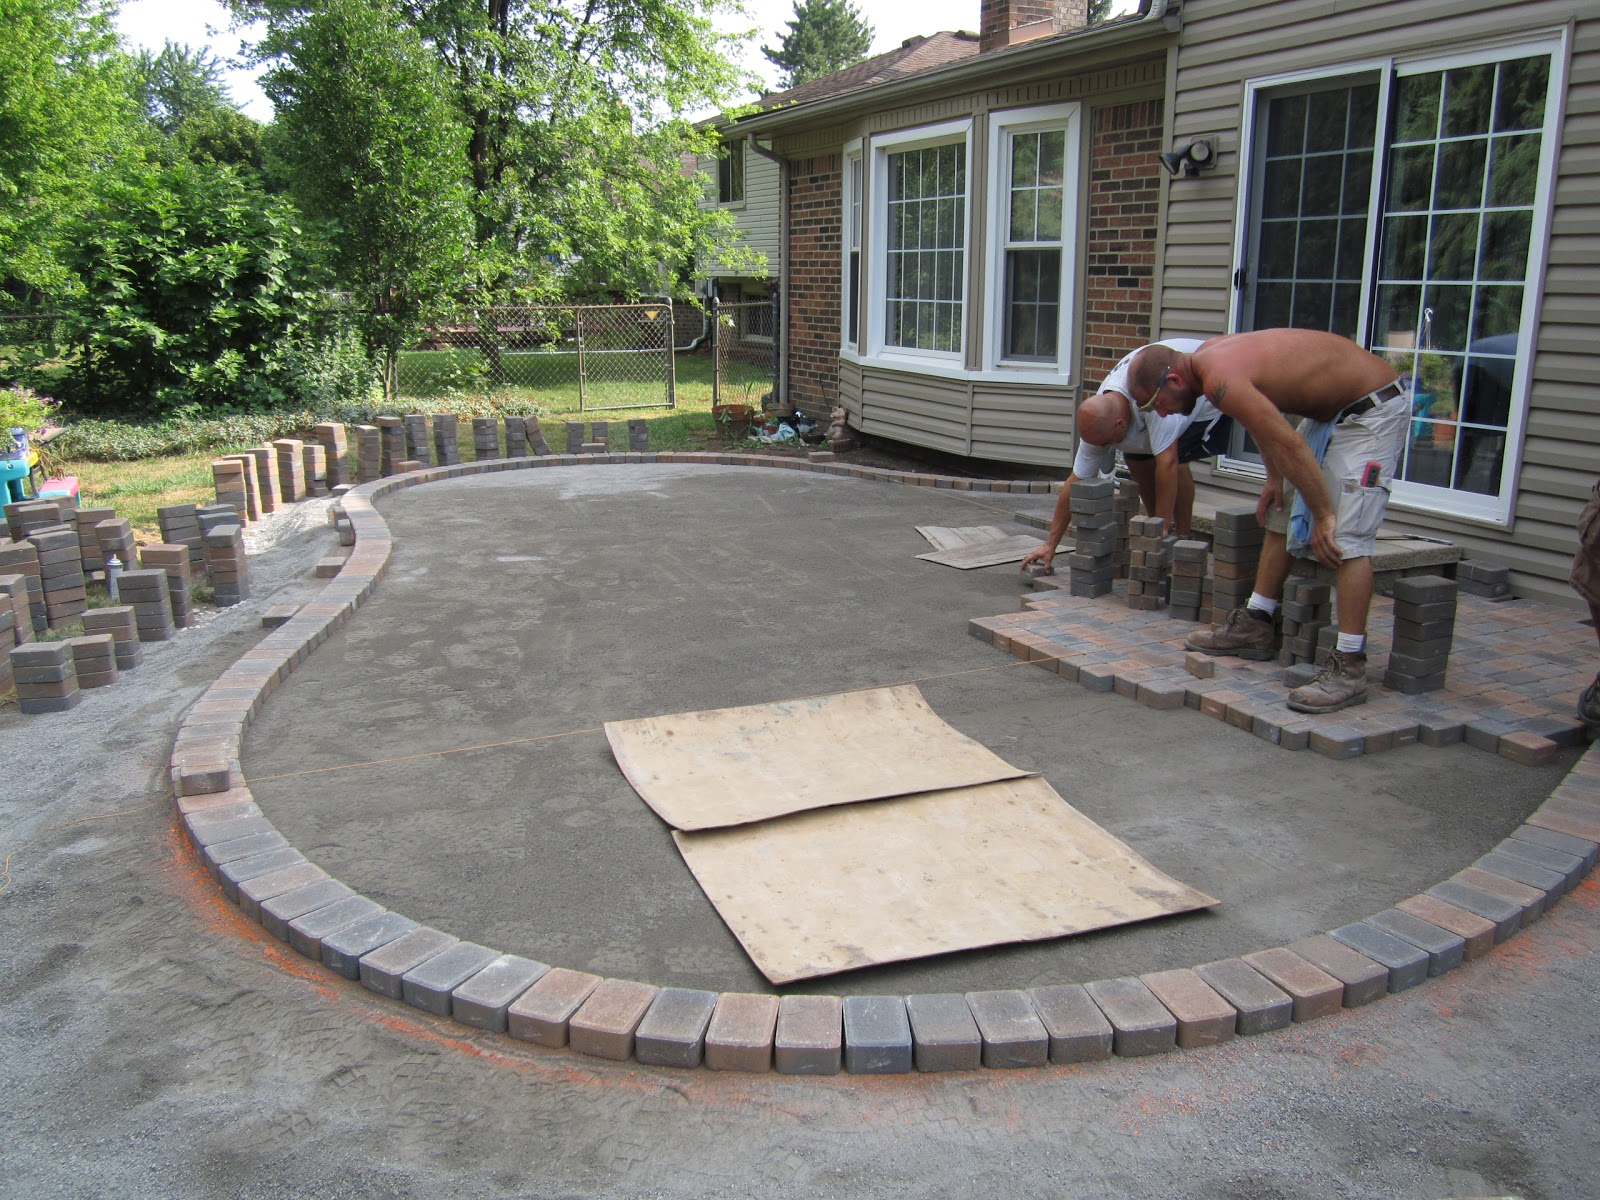 Brick pavers canton plymouth northville novi michigan repair cleaning sealing - Concrete backyard design ...